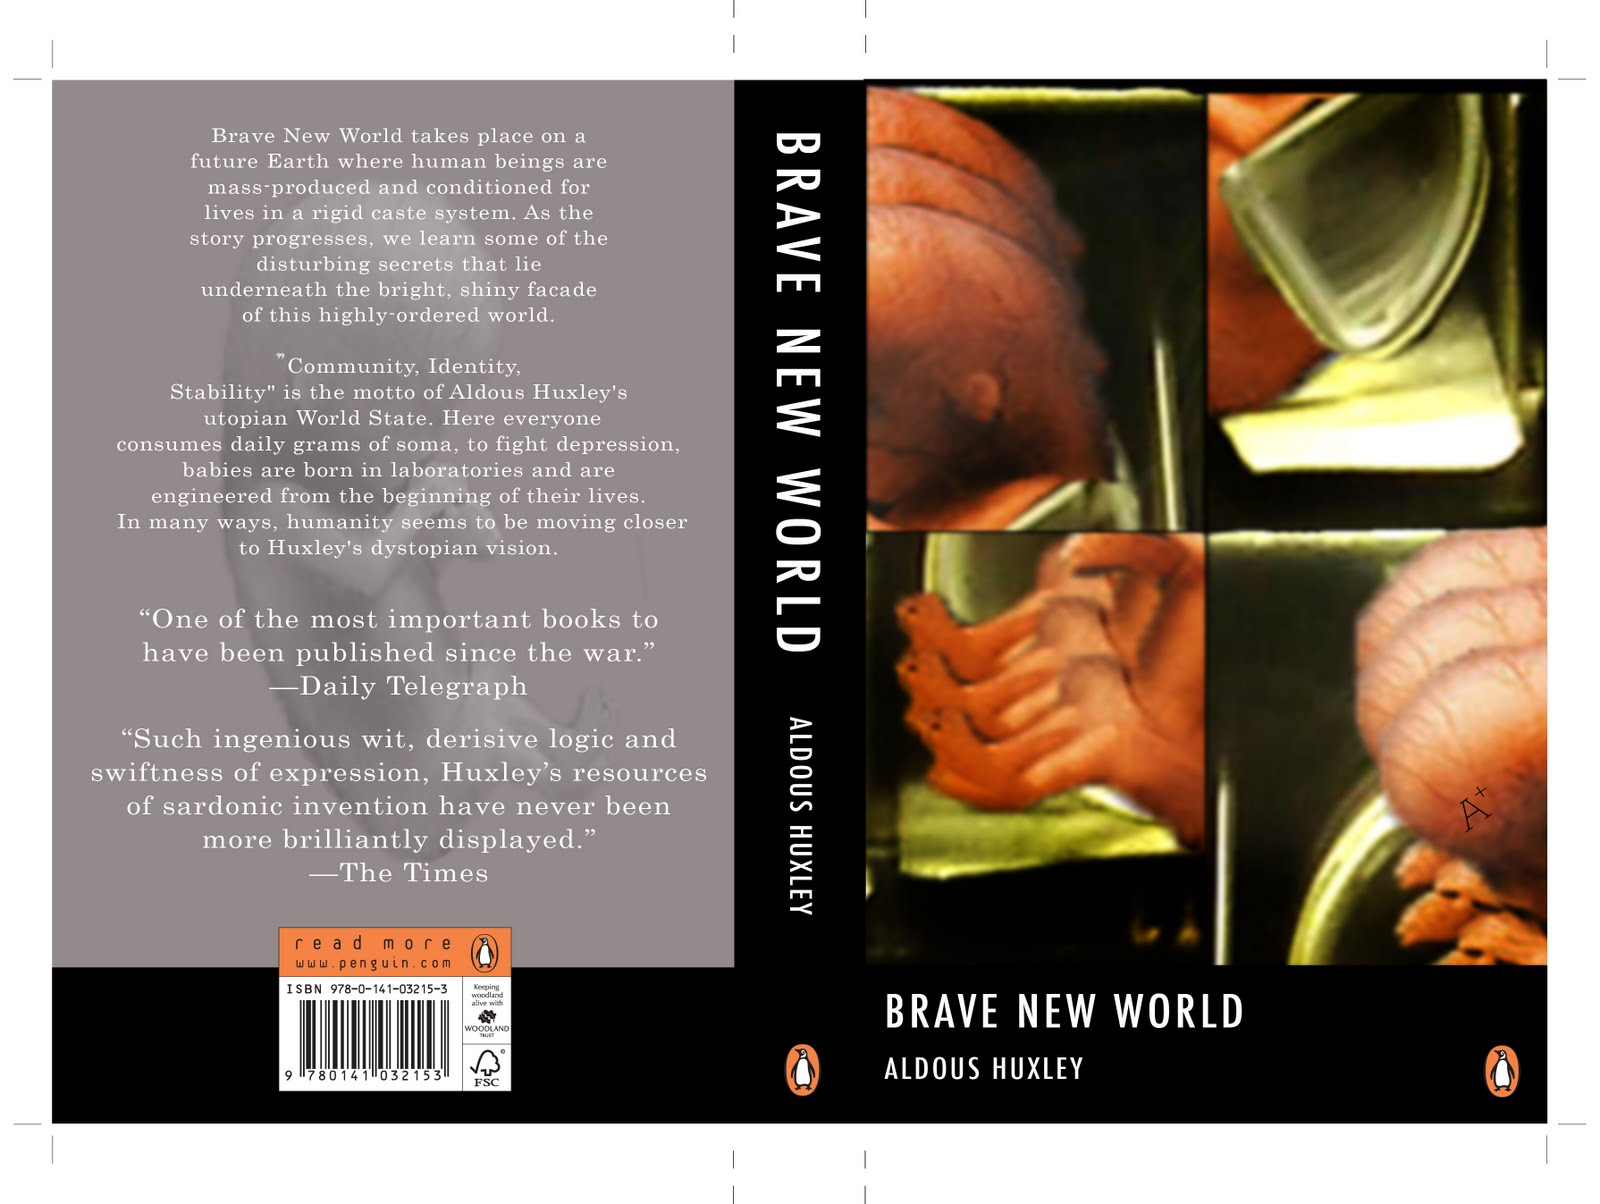 community identity and stability in brave new world by aldous huxley In the week following scientists' announcement of the development of the first living cell controlled by synthetic dna, i finished reading aldous huxley's anti-utopian novel brave new world.